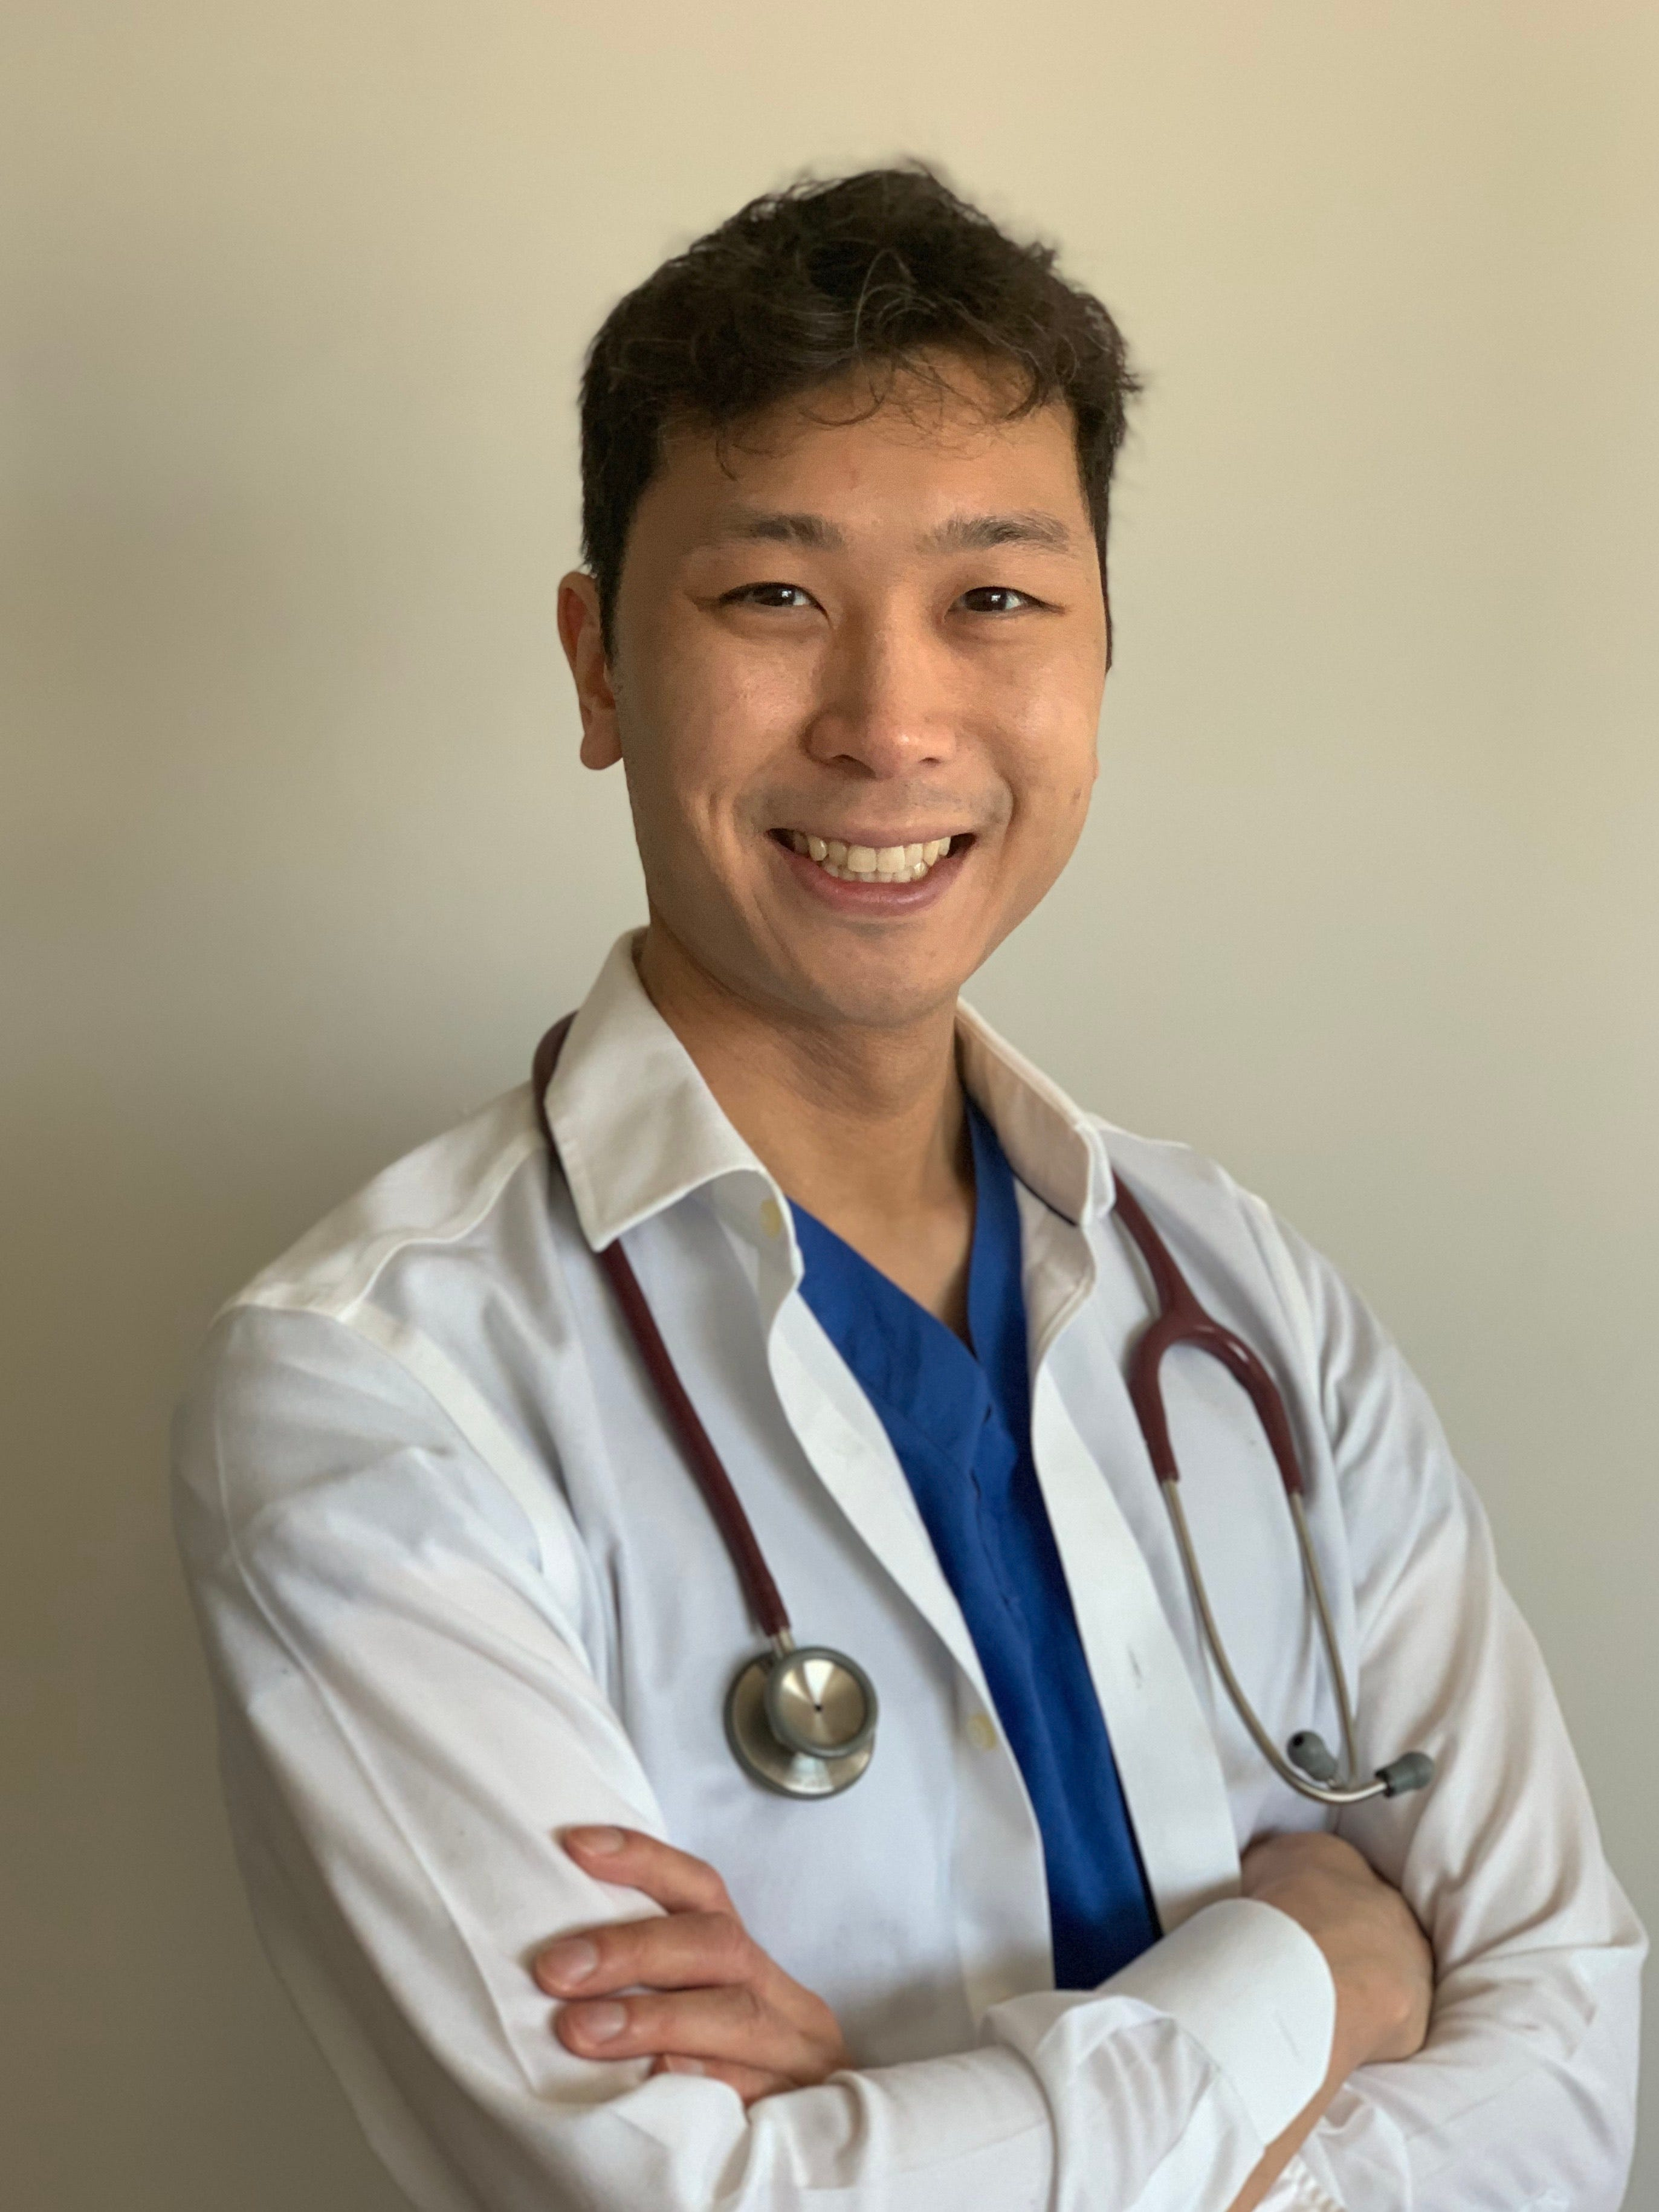 Young doctor: I have coronavirus advice for people my age. Step back, stay healthy